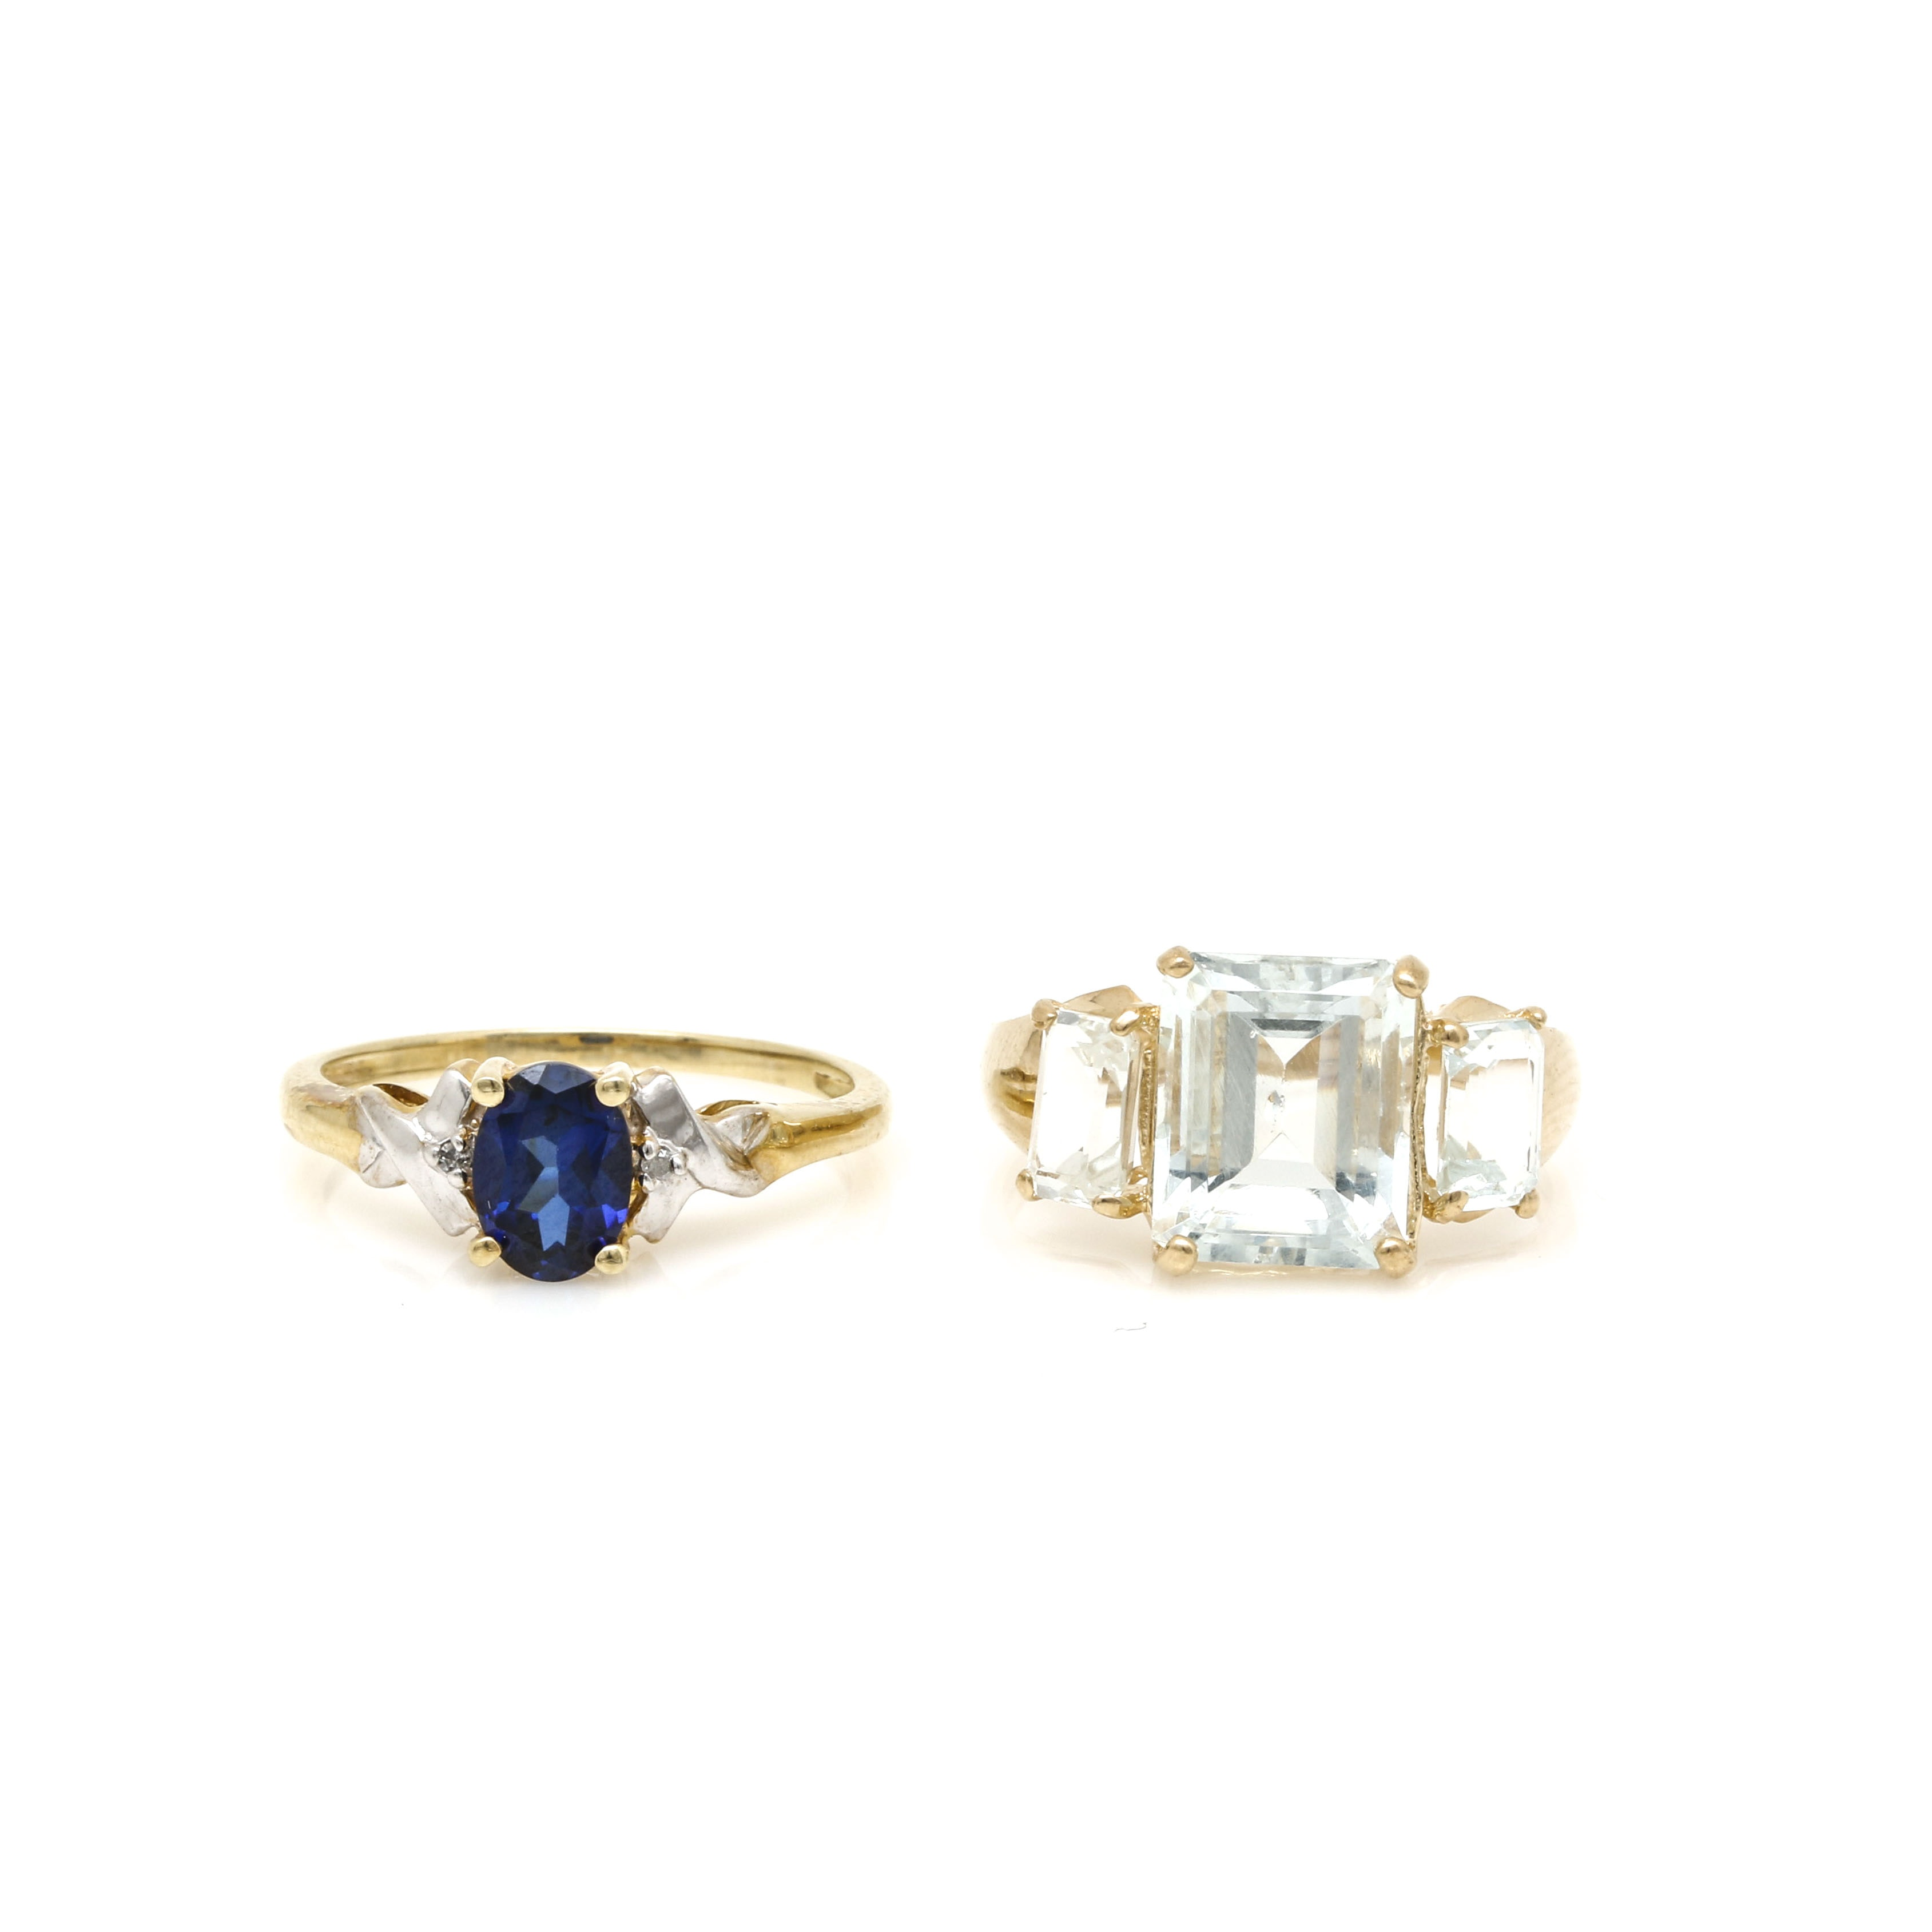 10K Yellow Gold Rings Including Aquamarine, Synthetic Sapphire, and Diamonds